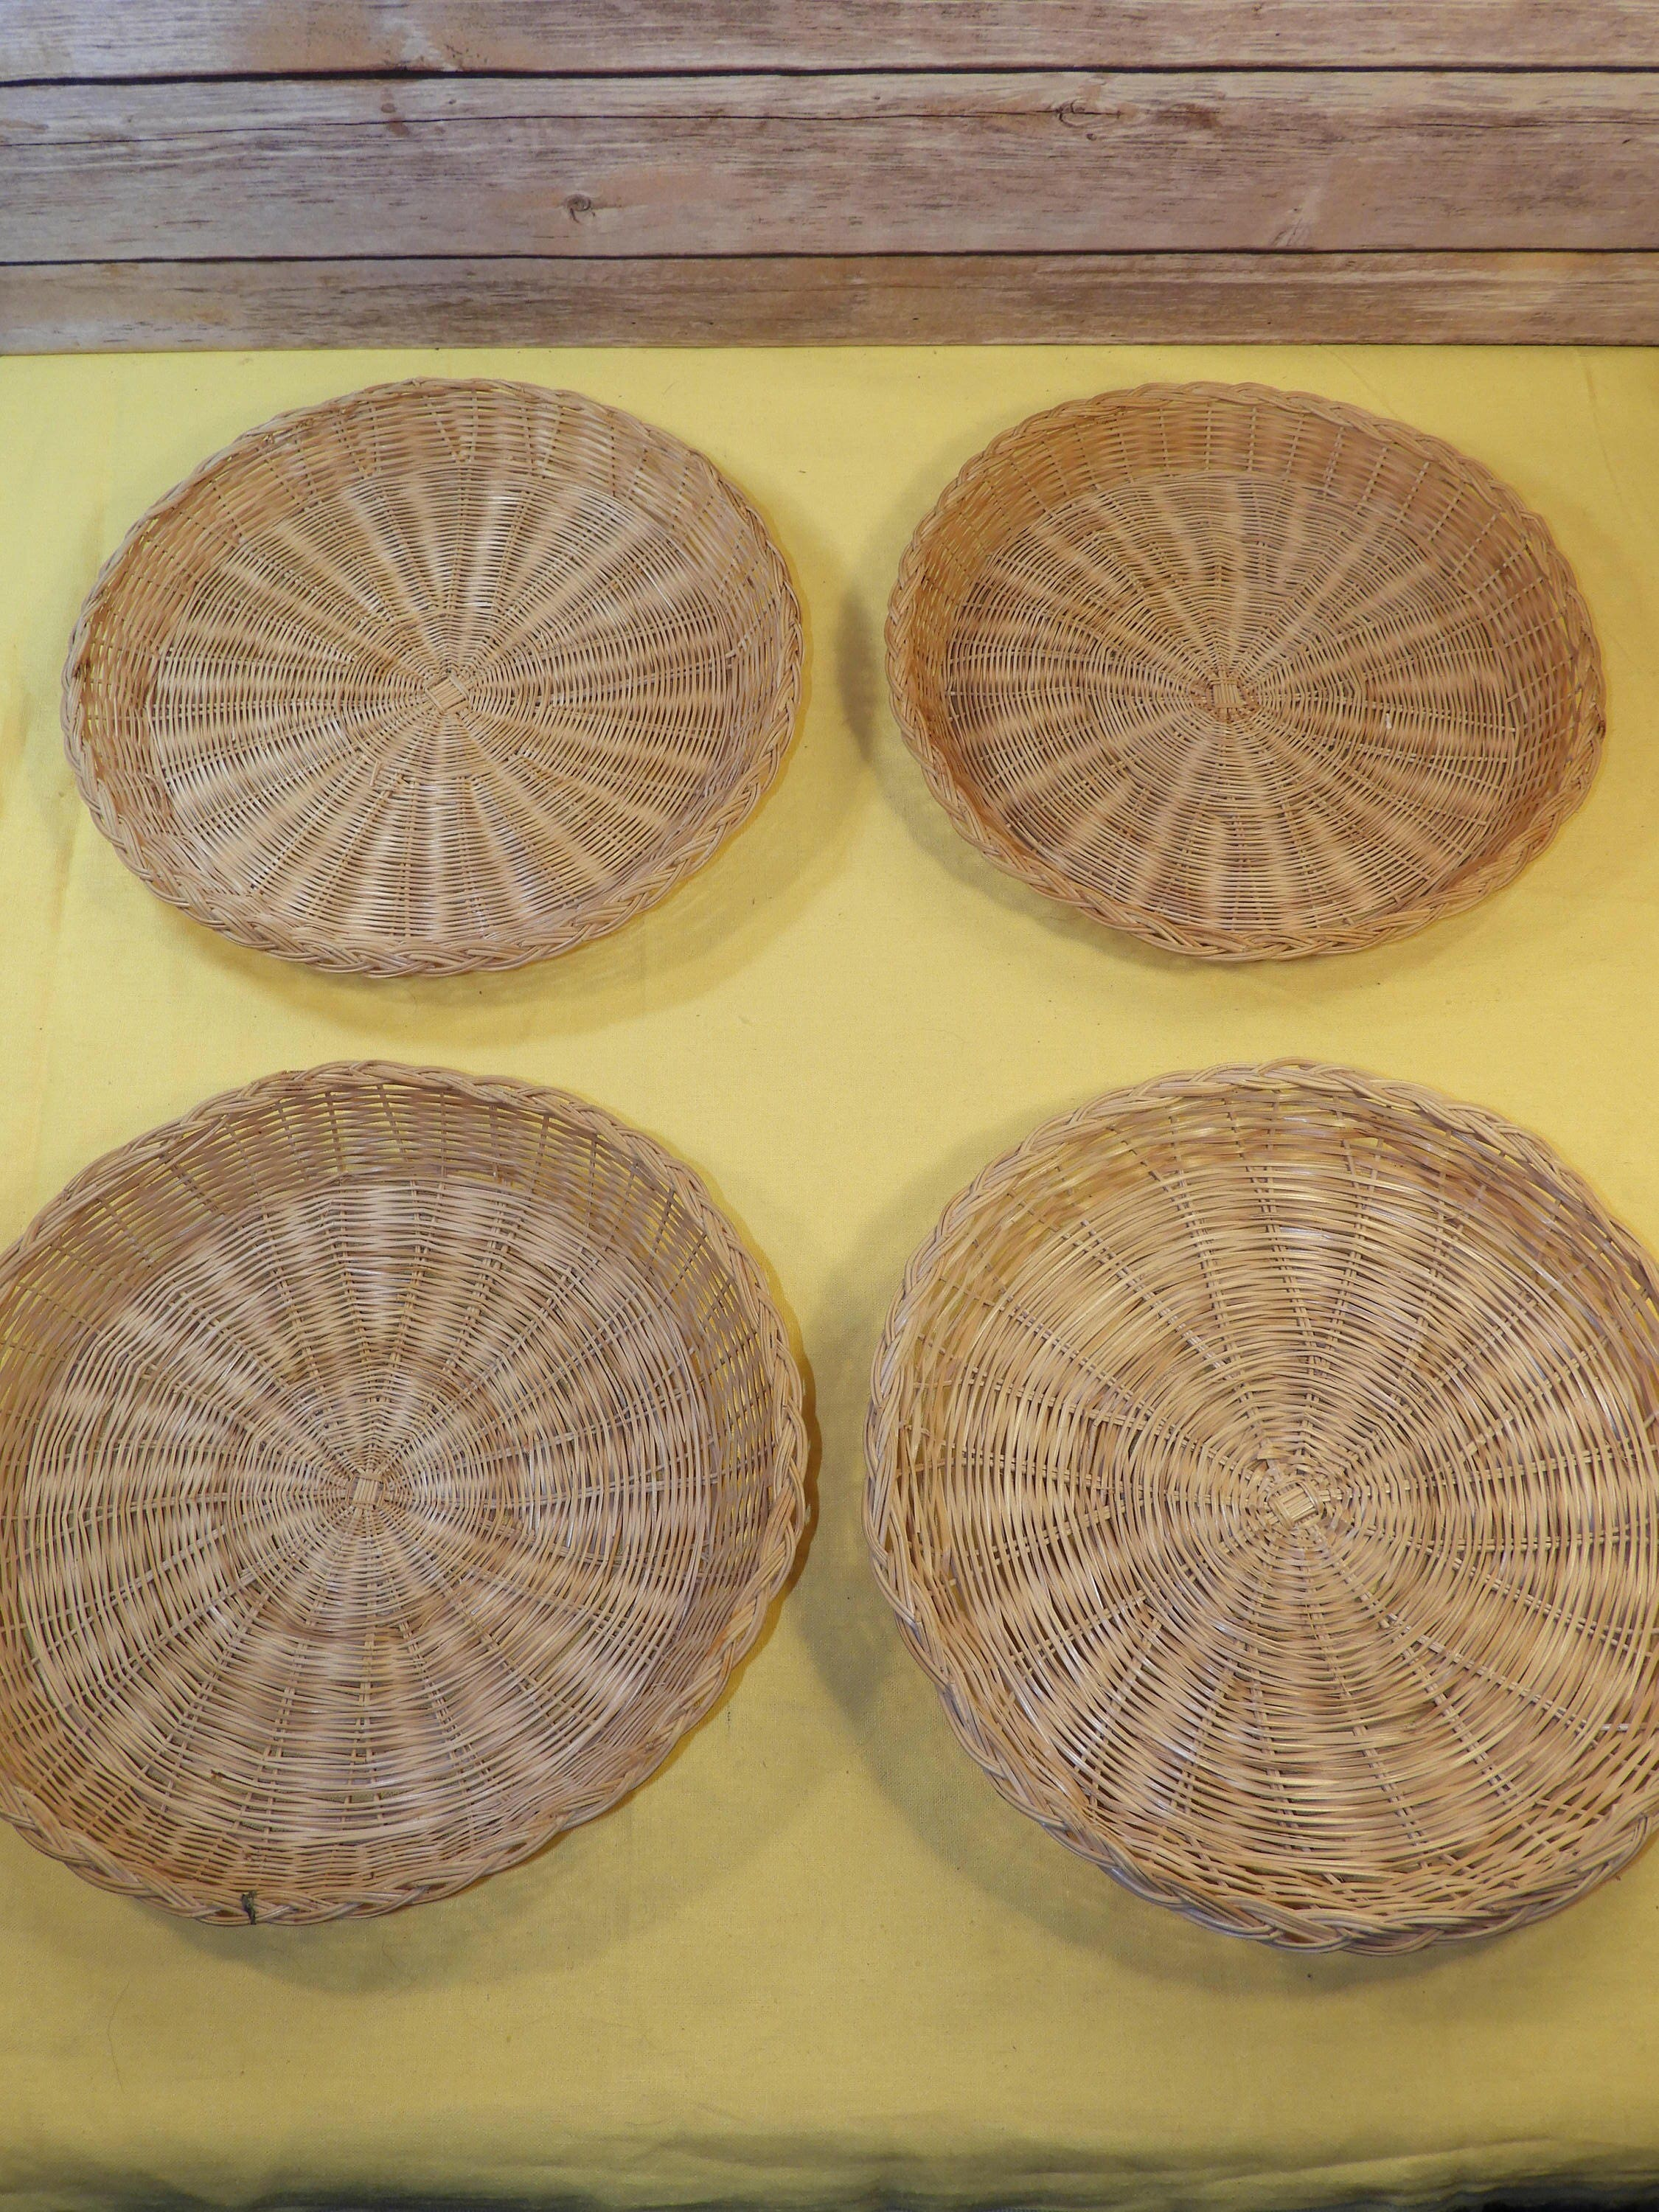 Vintage Rattan Wicker Woven Paper Plate Holders (4), Picnic Plate ...